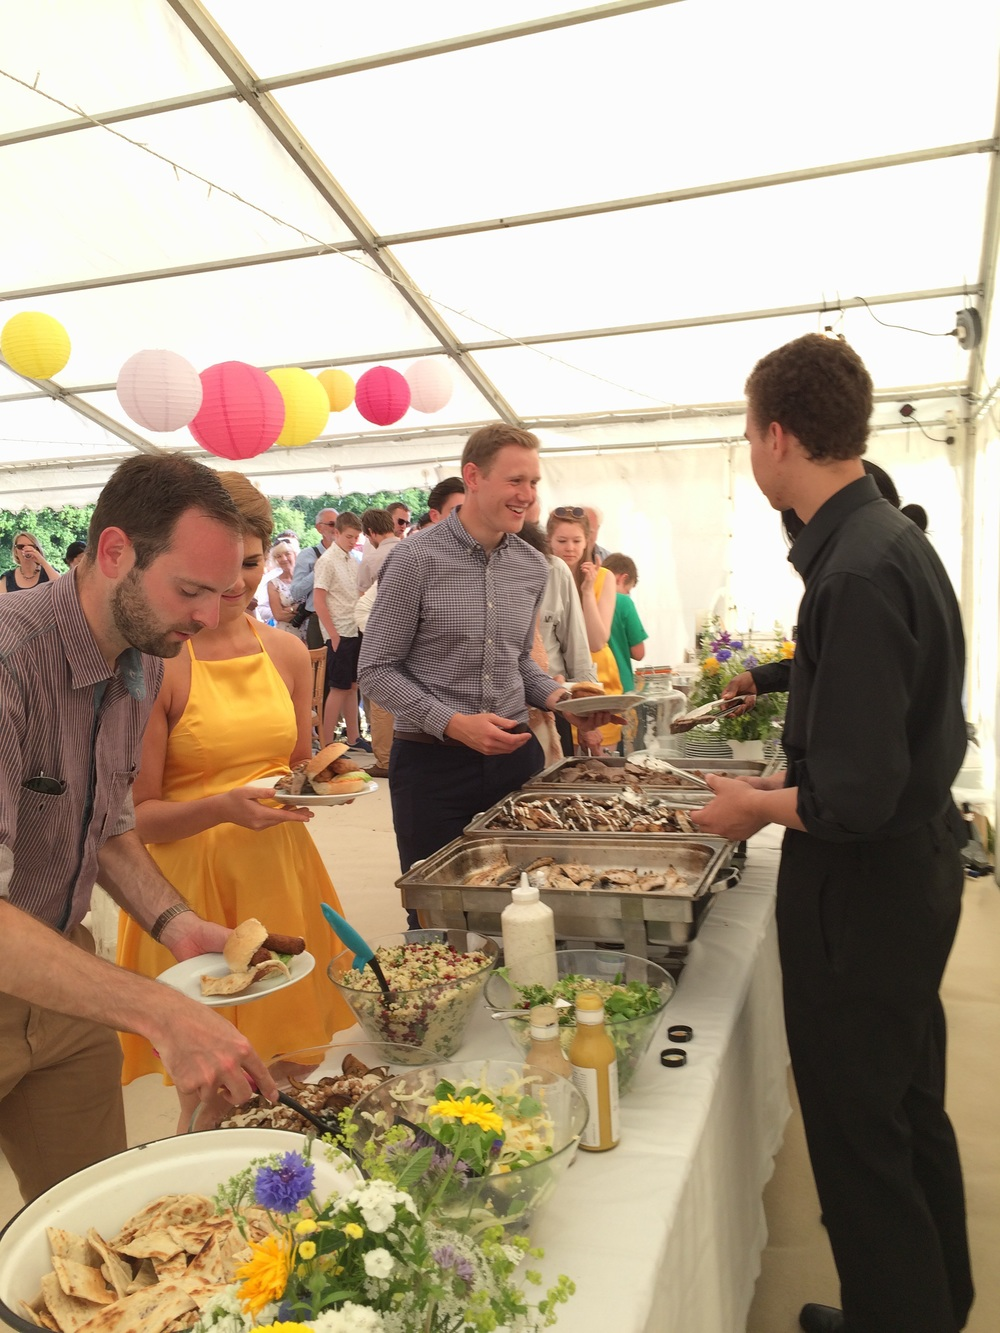 Guests enjoying a wedding bbq in Kent last weekend